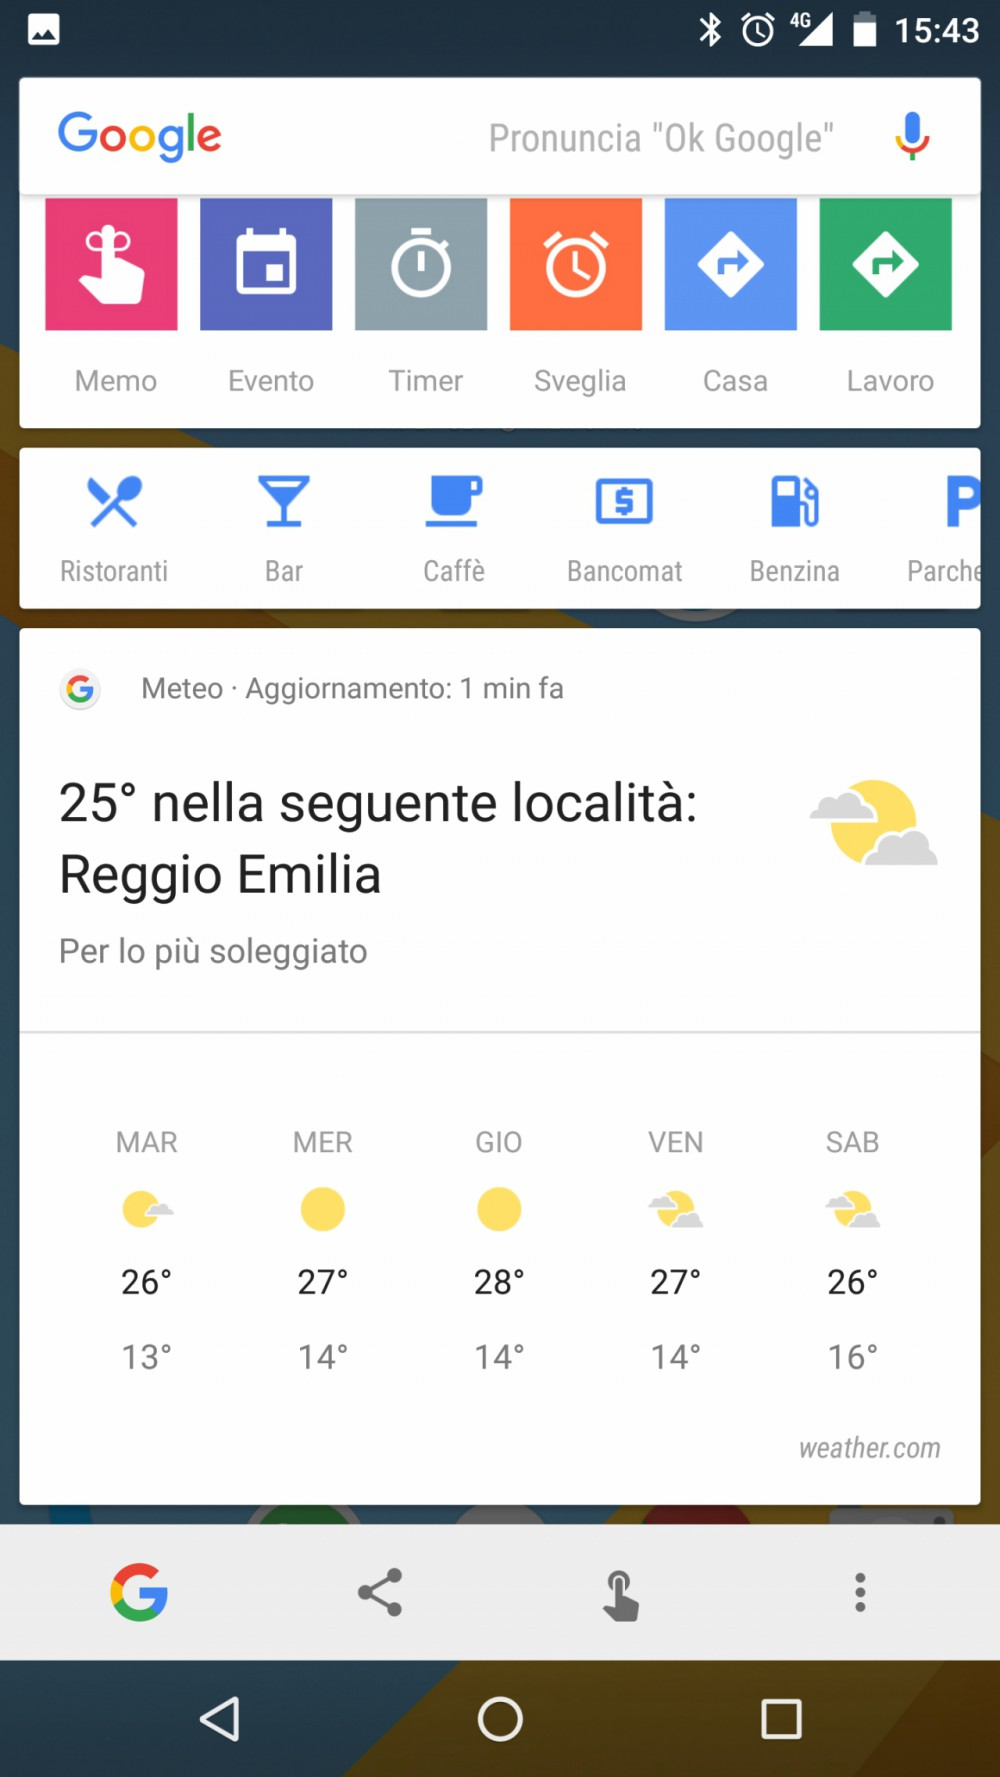 google screen search nuove icone e collegamenti diretti a maps e meteo. Black Bedroom Furniture Sets. Home Design Ideas